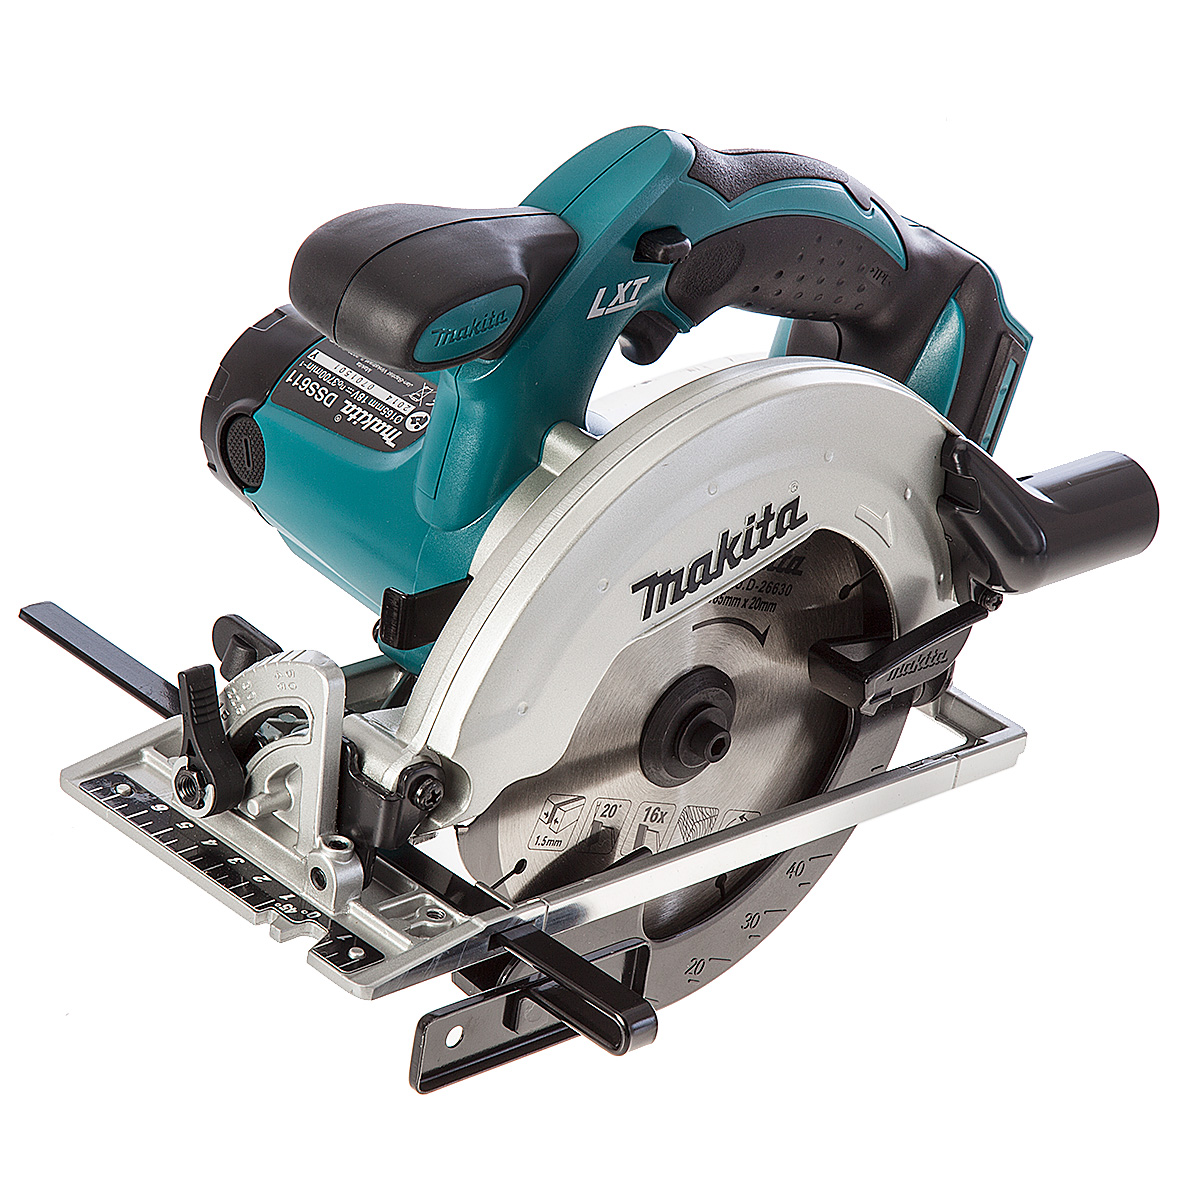 Makita DSS611 18V Brushed 165mm Circular Saw LXT - Body Only